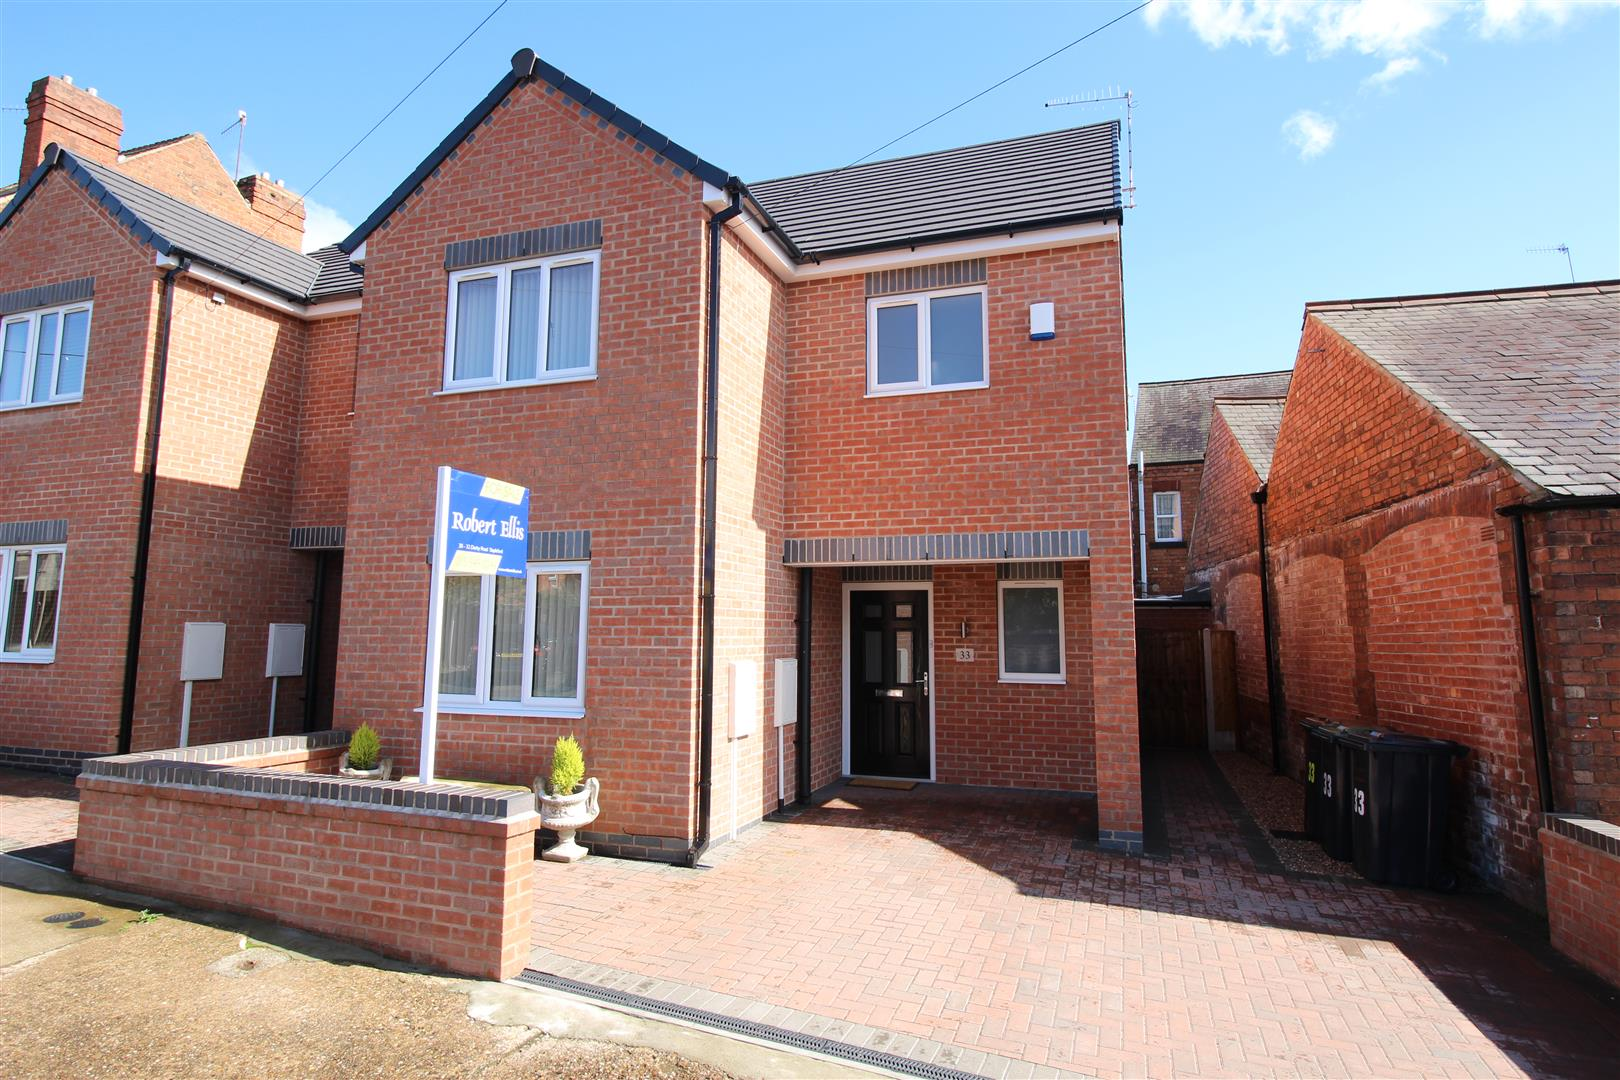 3 Bedrooms House for sale in Cyril Avenue, Stapleford